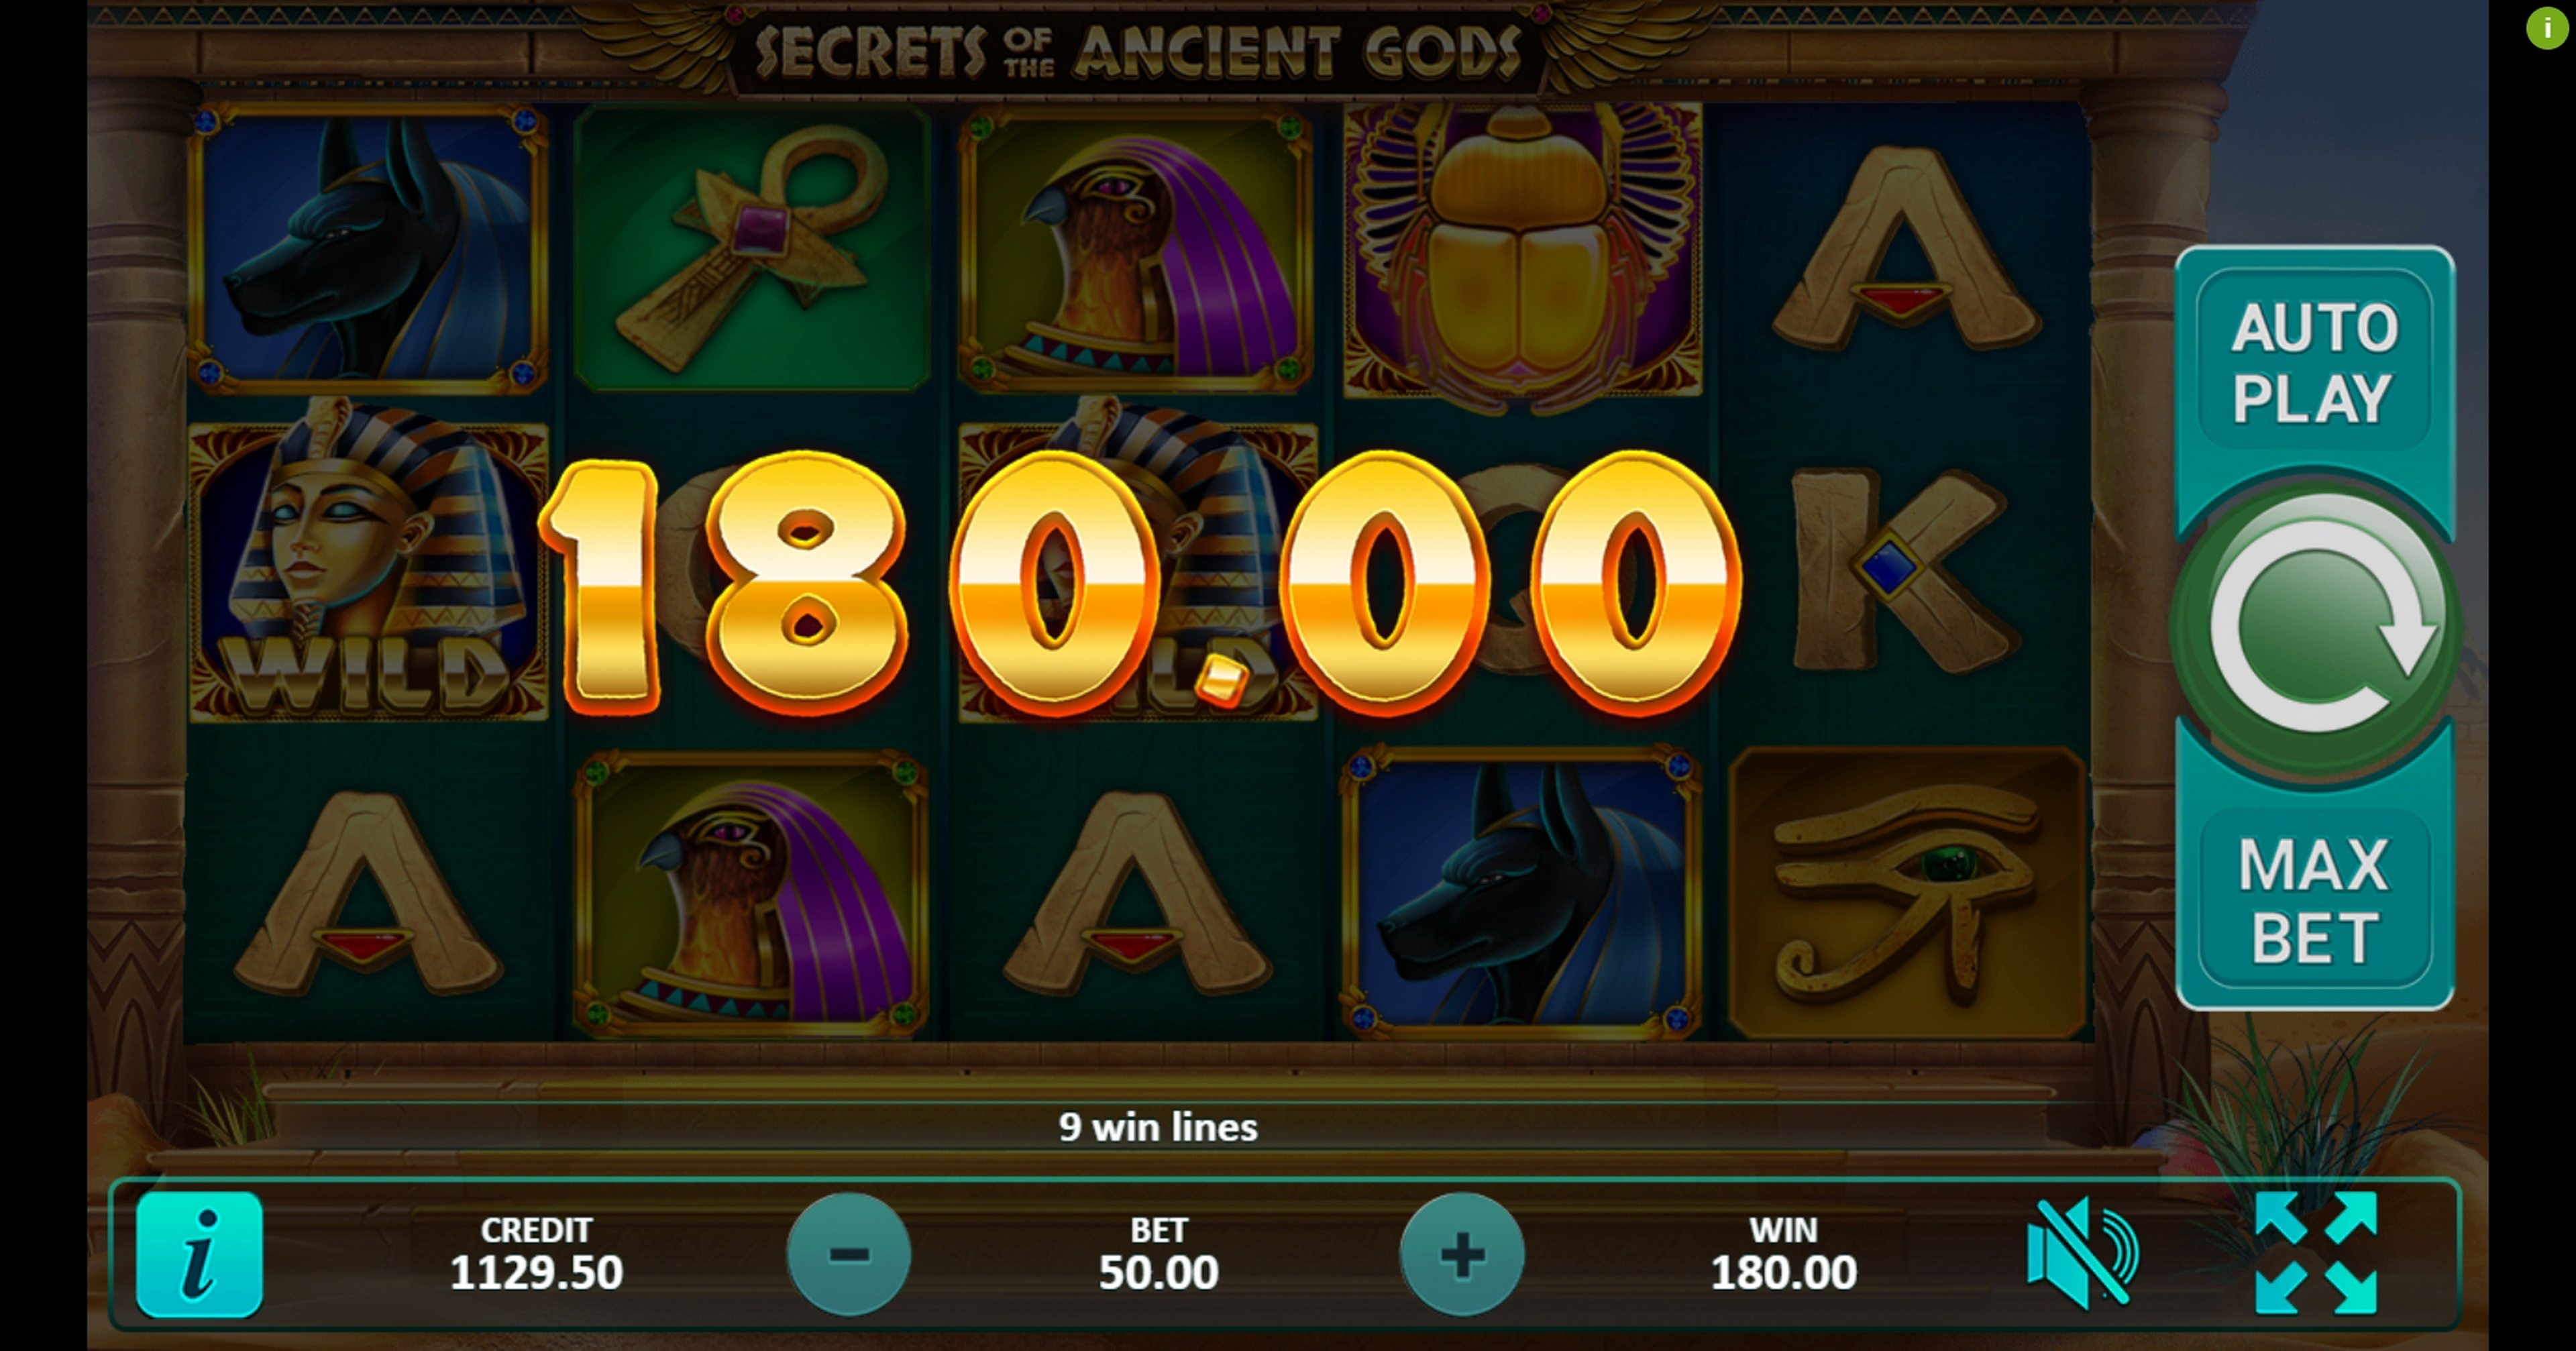 Win Money in Secrets of the Ancient Gods Free Slot Game by Gamefish Global